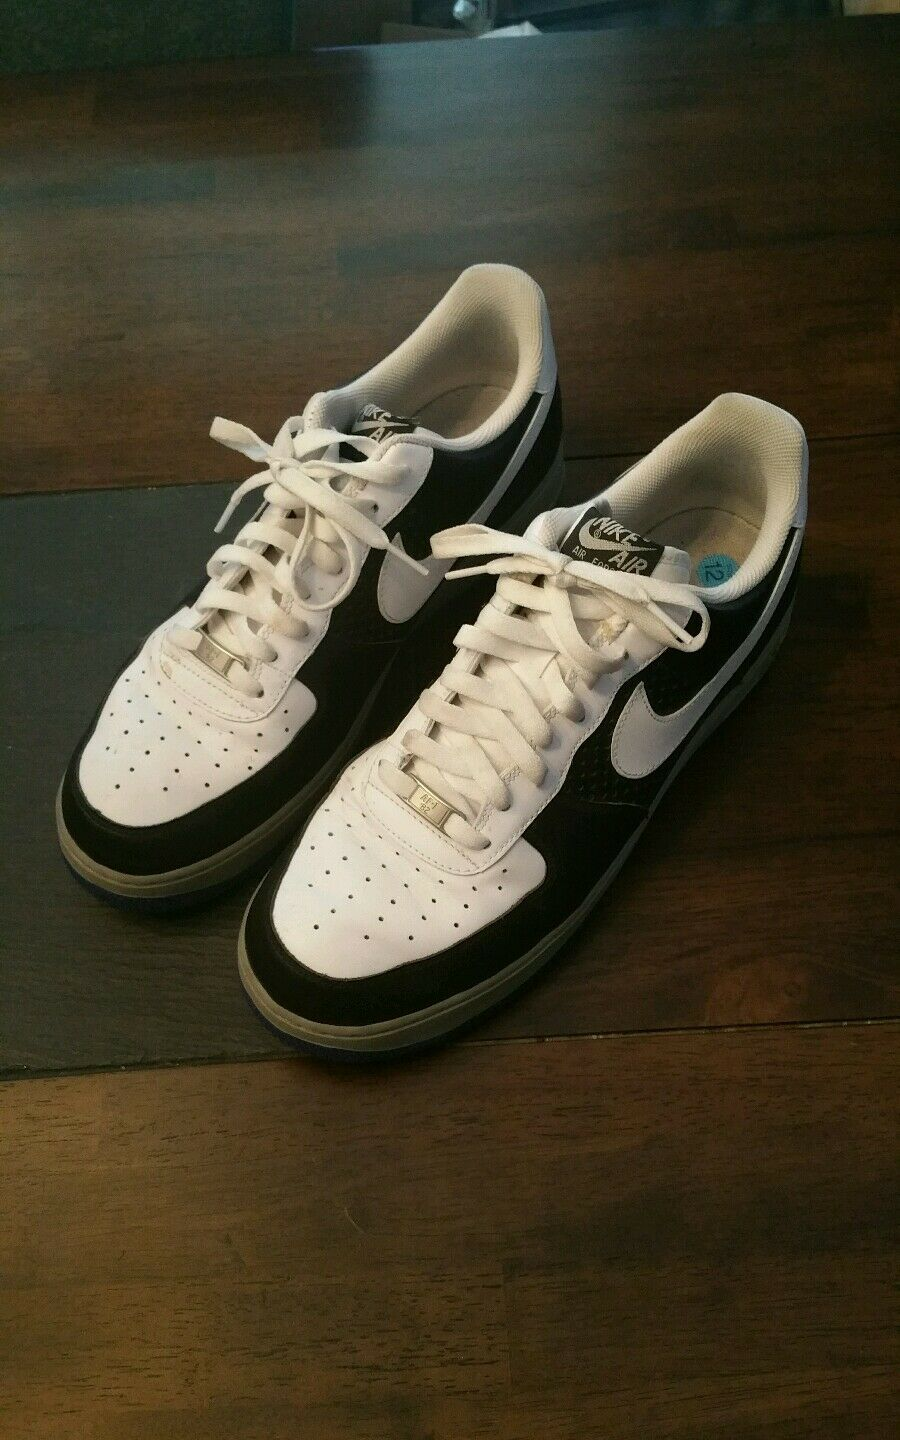 Nike Air Force 1 AF1 size 12 premium max